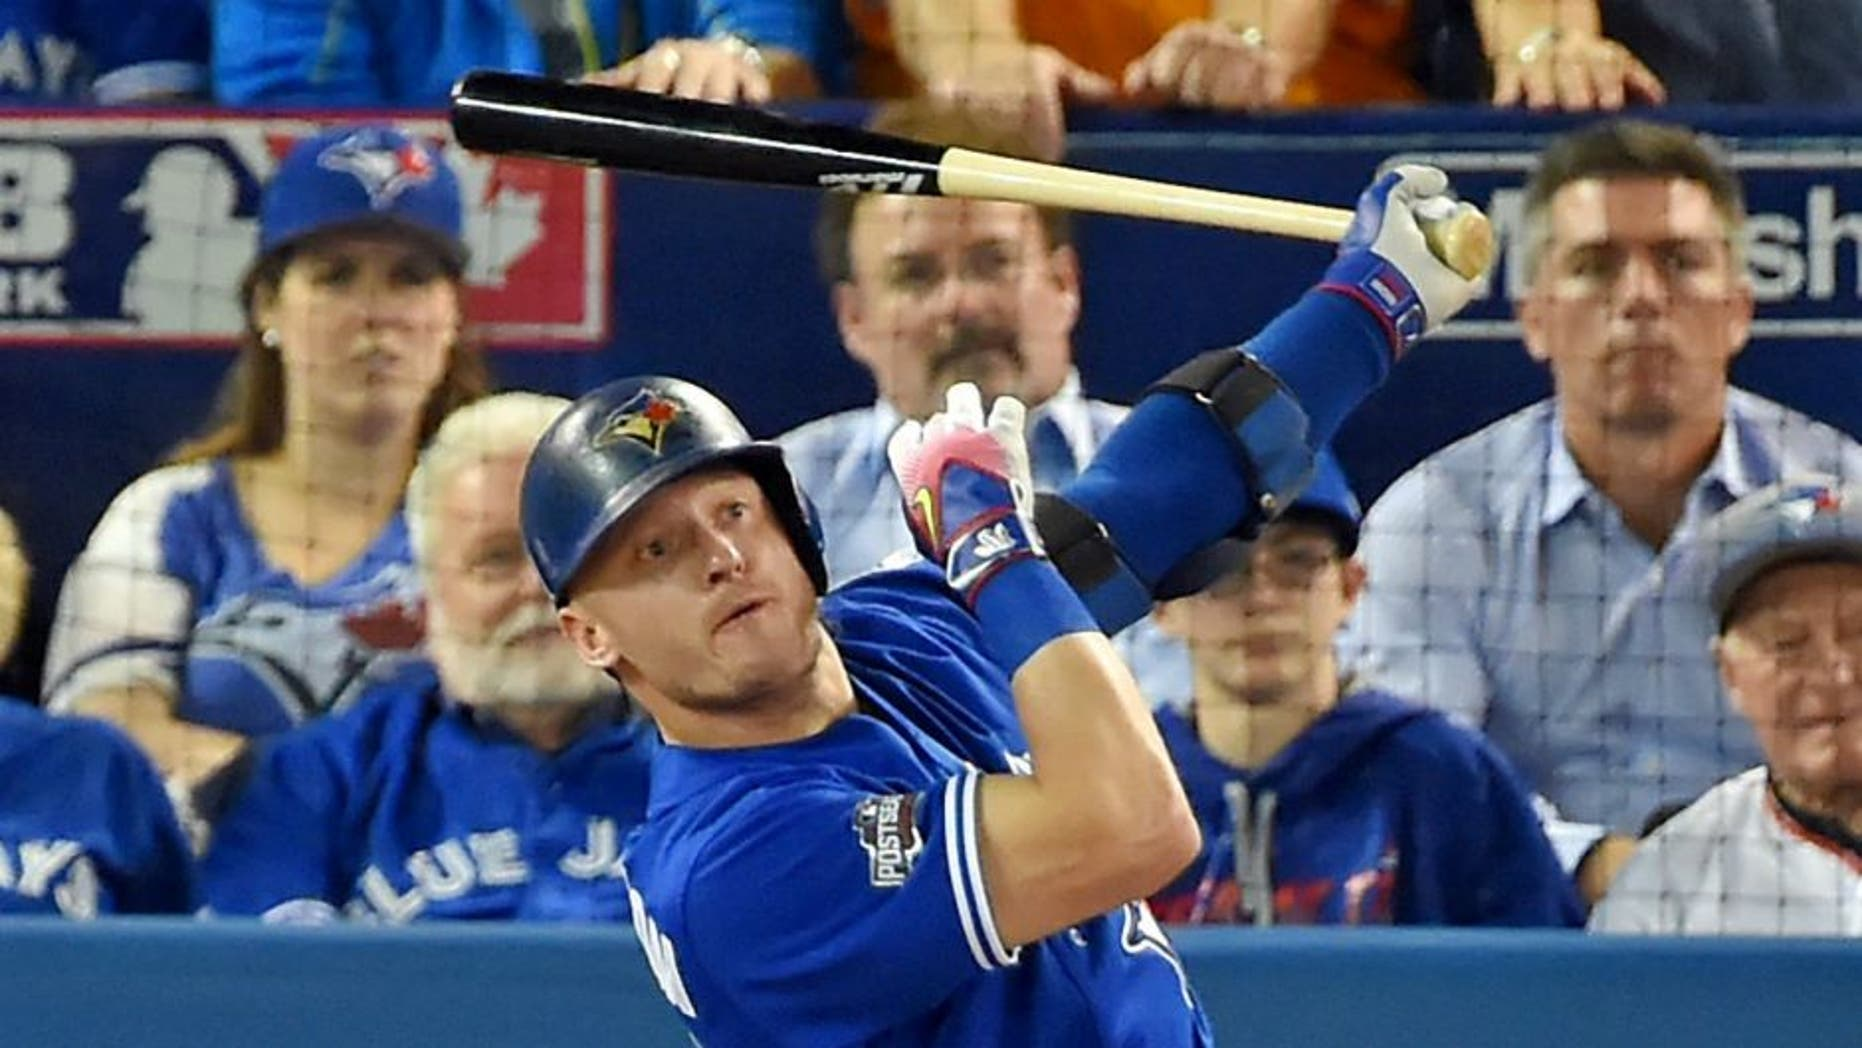 Oct 18, 2016; Toronto, Ontario, CAN; Toronto Blue Jays third baseman Josh Donaldson (20) hits a solo home run during the third inning against the Cleveland Indians in game four of the 2016 ALCS playoff baseball series at Rogers Centre. Mandatory Credit: Dan Hamilton-USA TODAY Sports